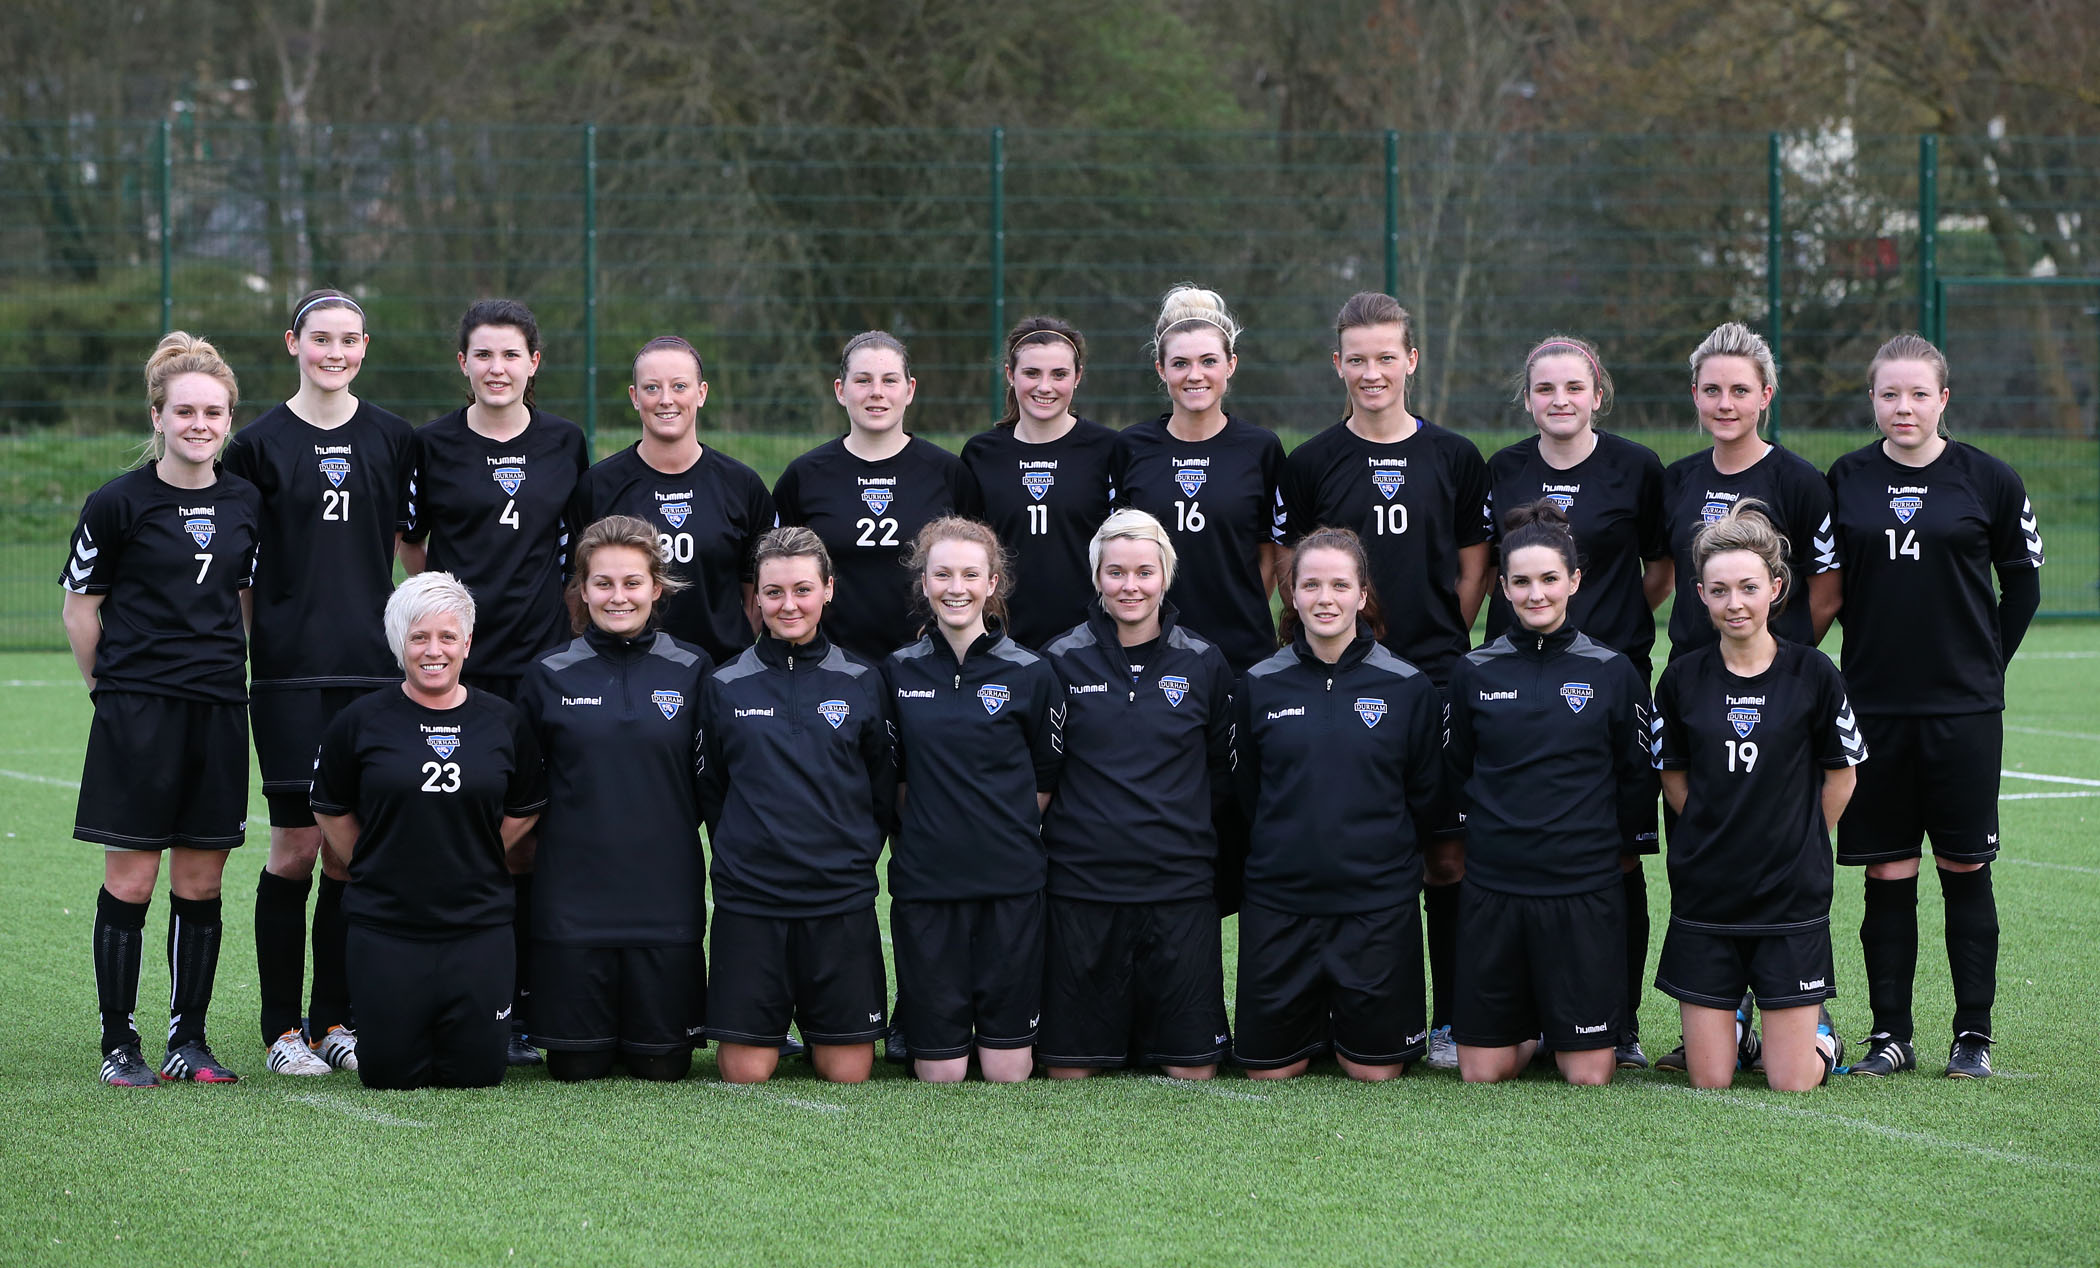 NEW ERA: New team Durham Women pictured at the Graham Sports Centre, Maiden Castle, in Durham. They start their season on Thursday against Sunderland.